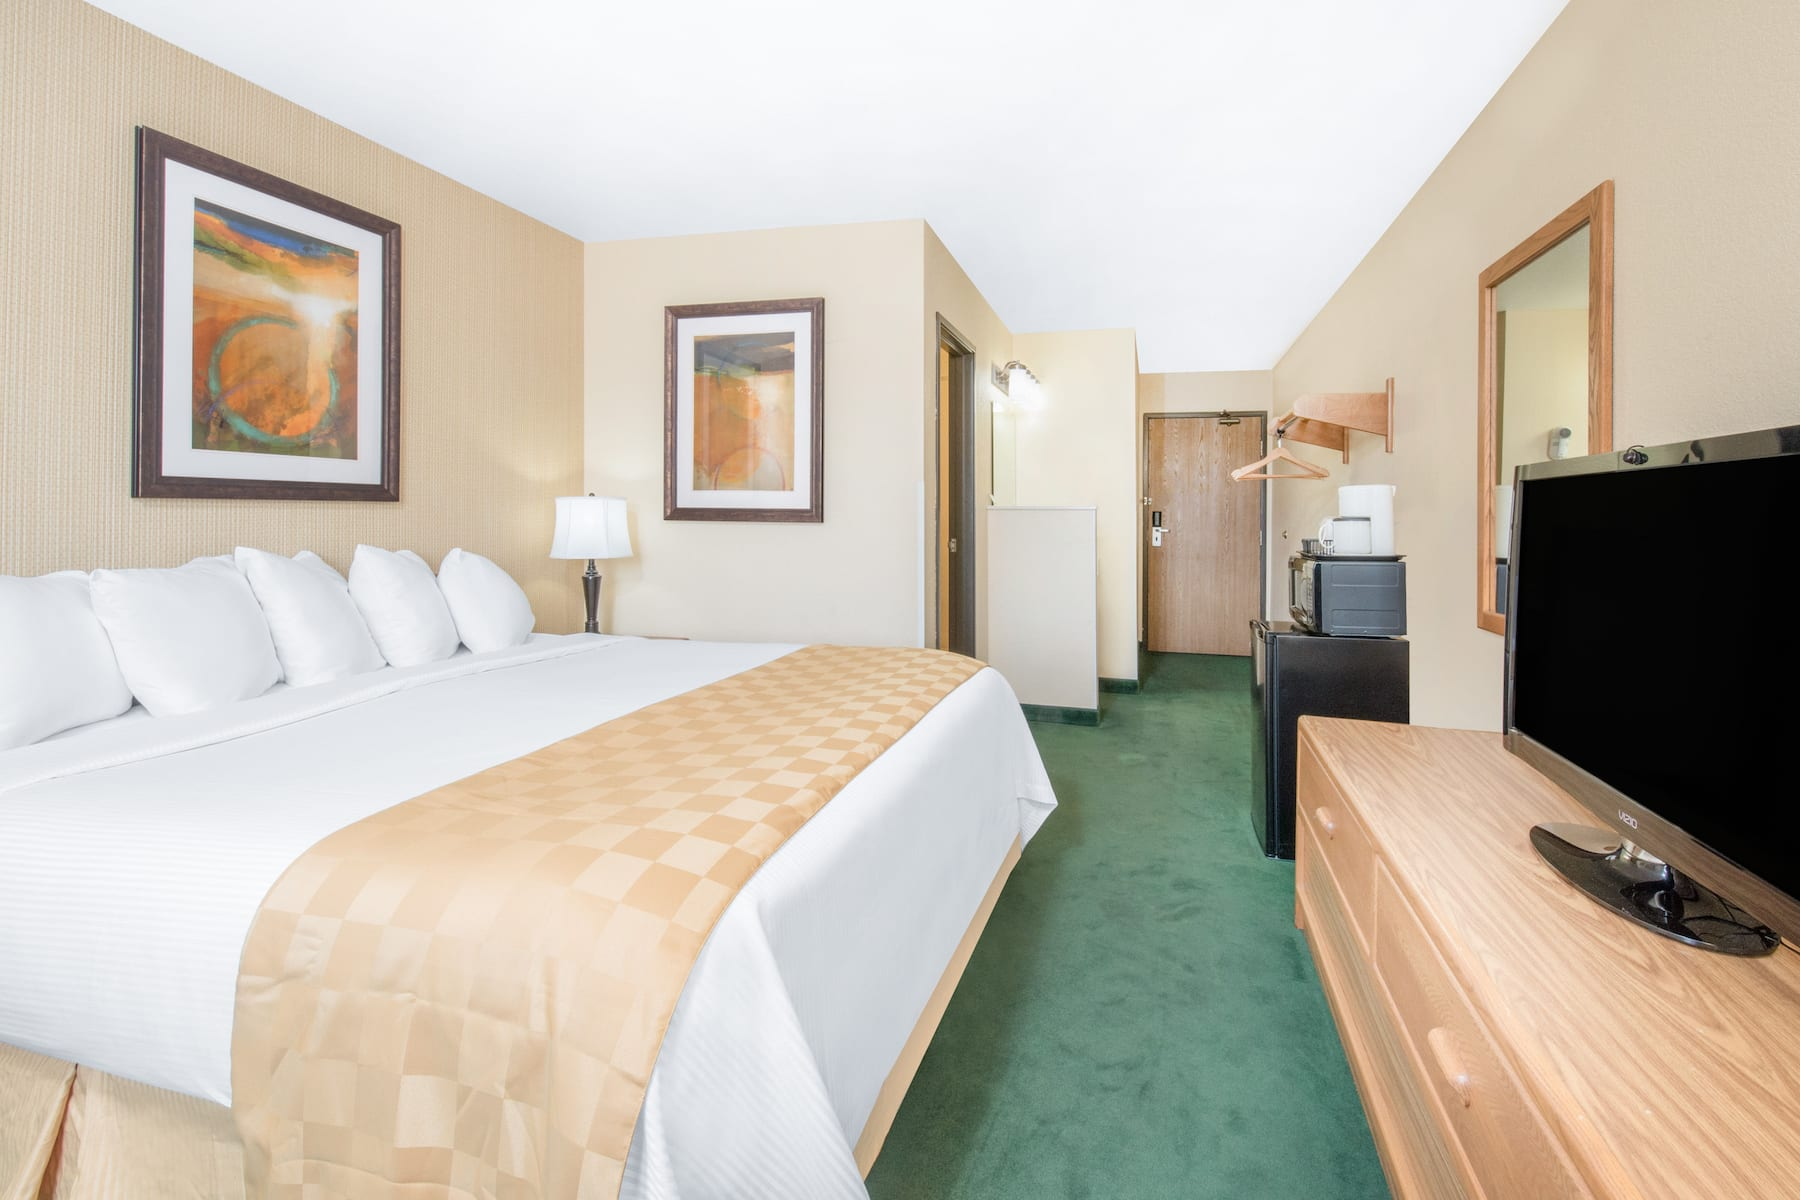 Days Inn Amp Suites By Wyndham Fargo 19th Ave Airport Dome